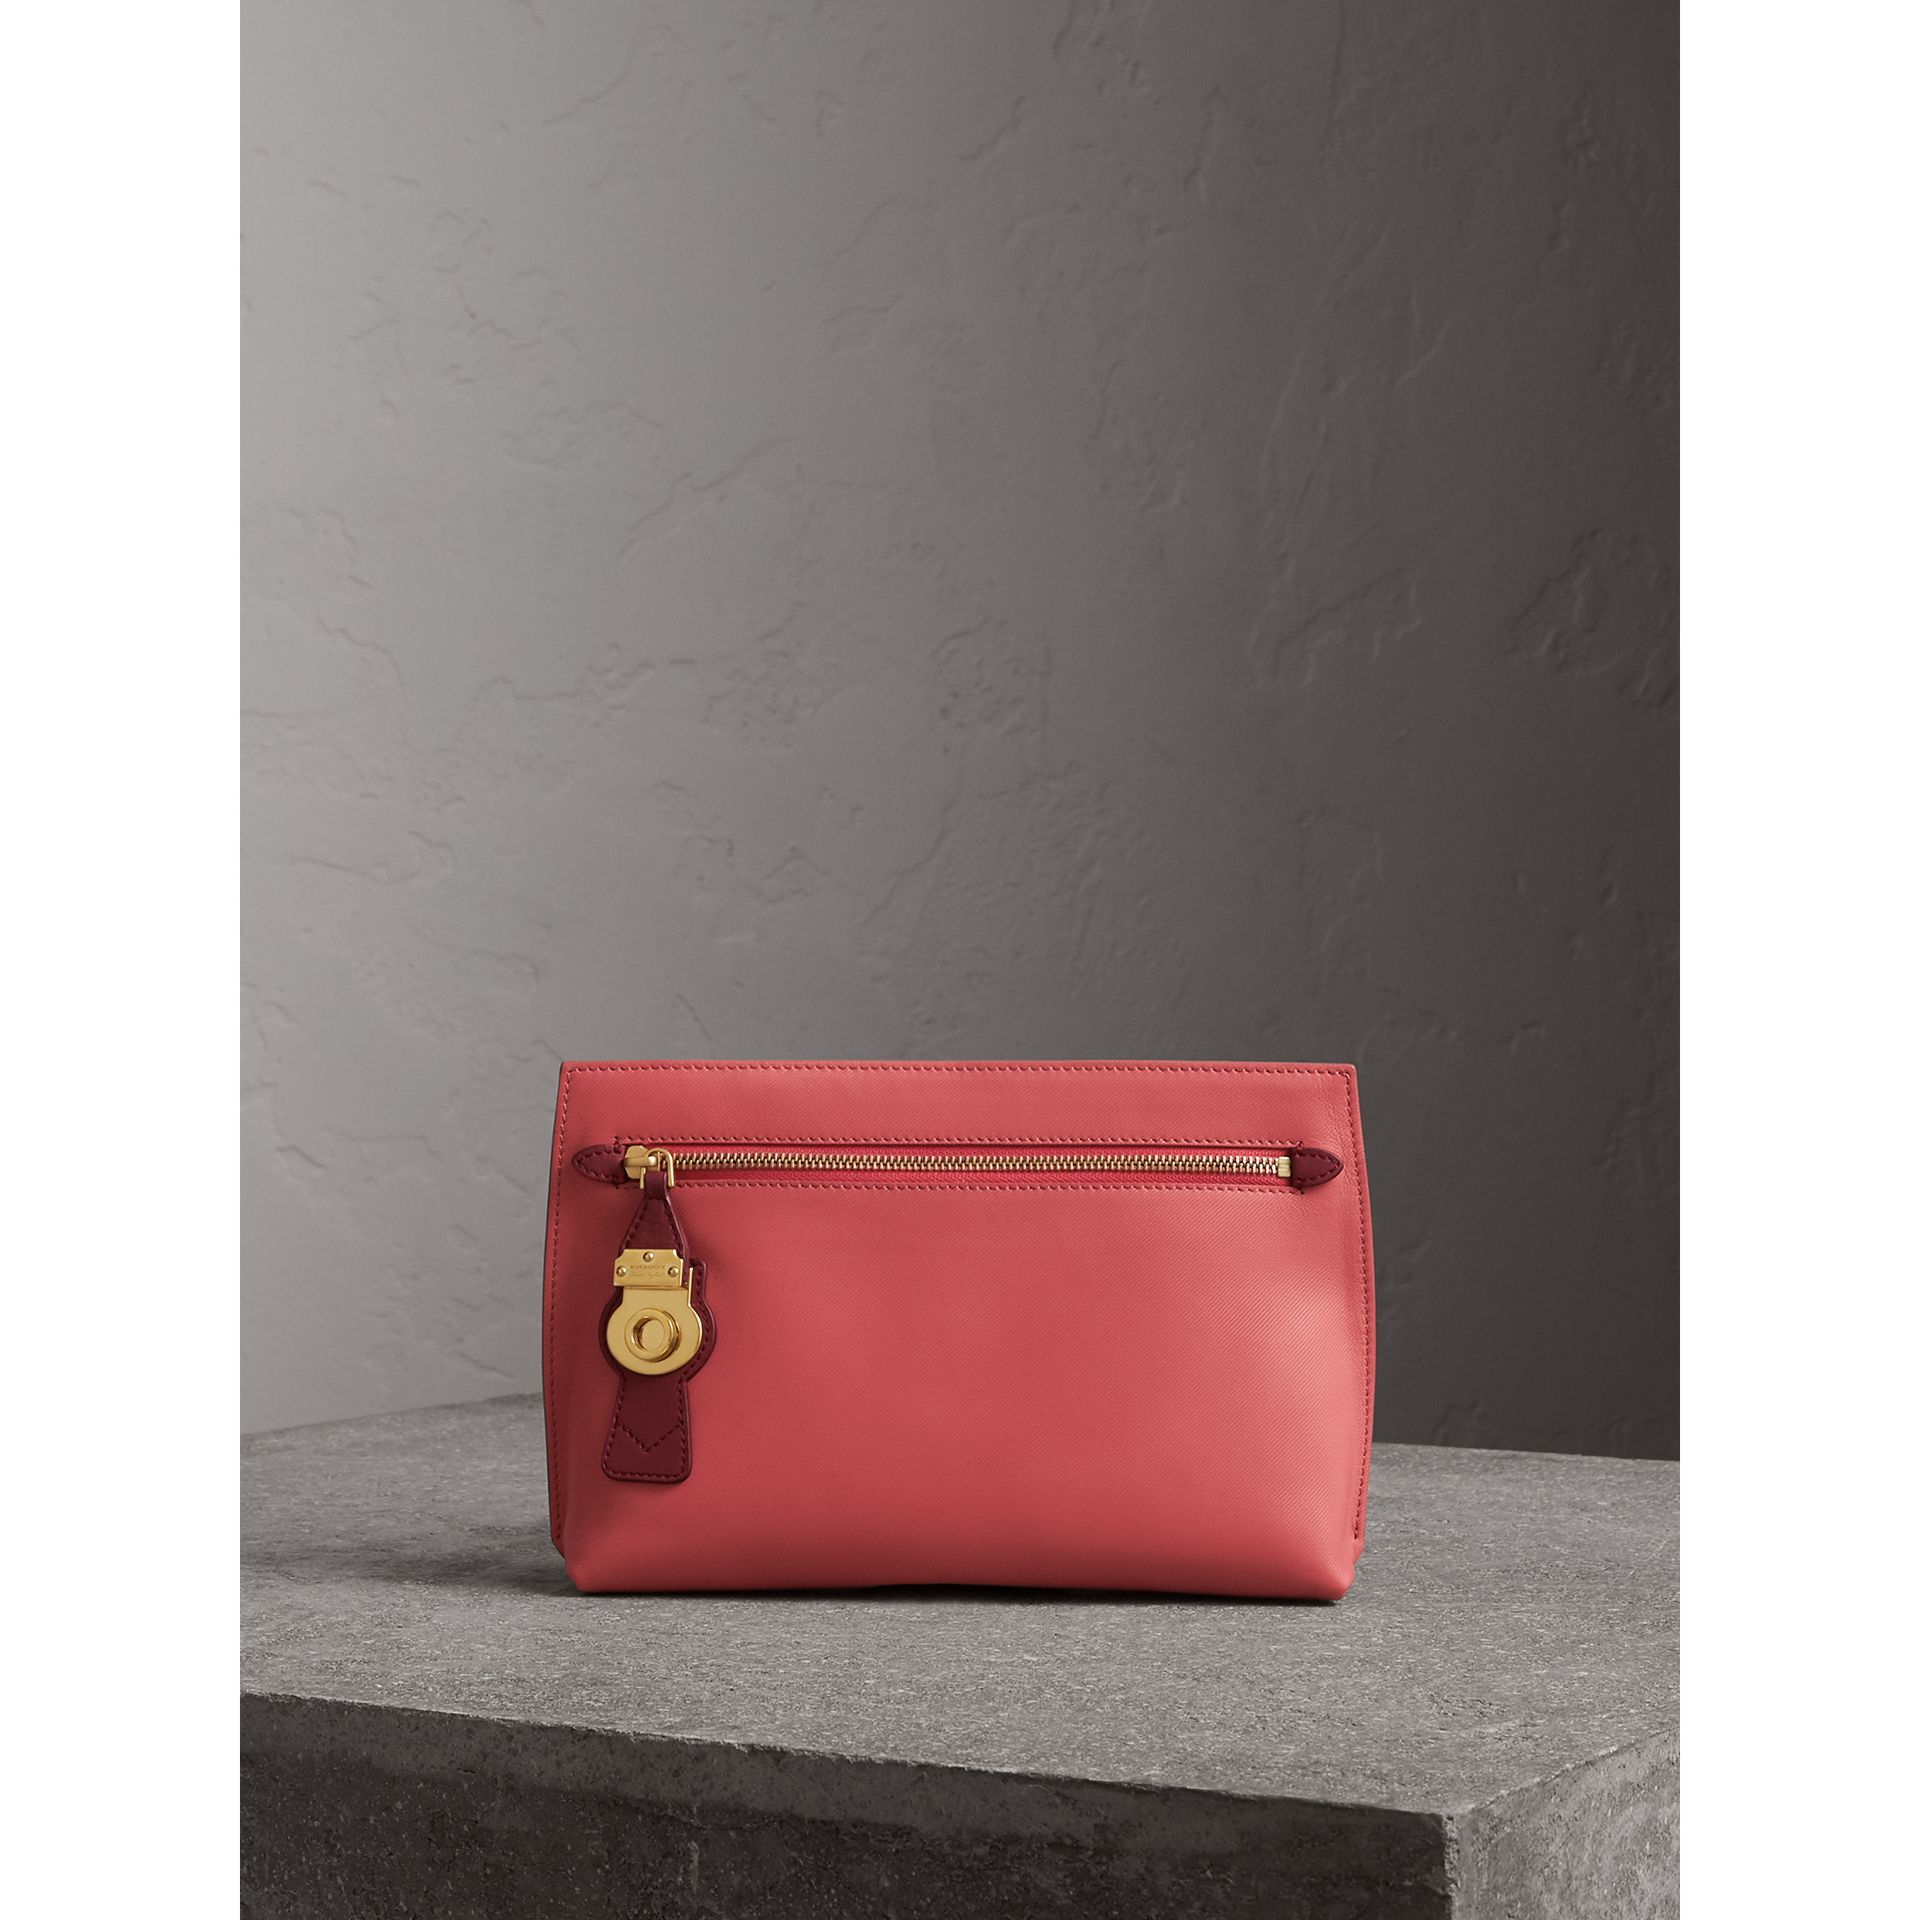 Two-tone Trench Leather Wristlet Pouch in Blossom Pink/antique Red - Women | Burberry United States - gallery image 0